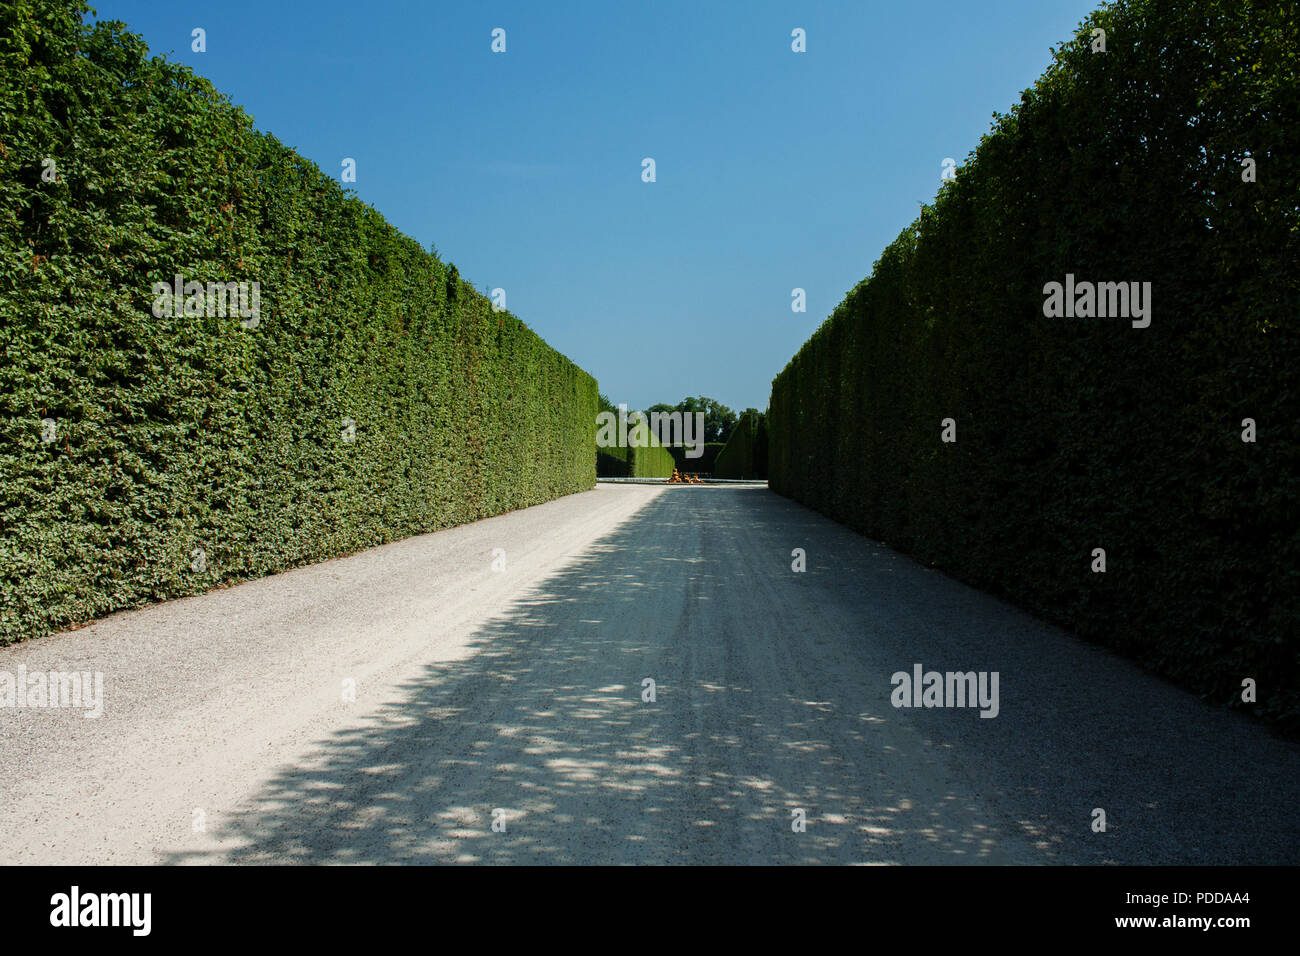 Trimmed grim walls from the labyrinth in Palace of Versailles garden, summer - Stock Image